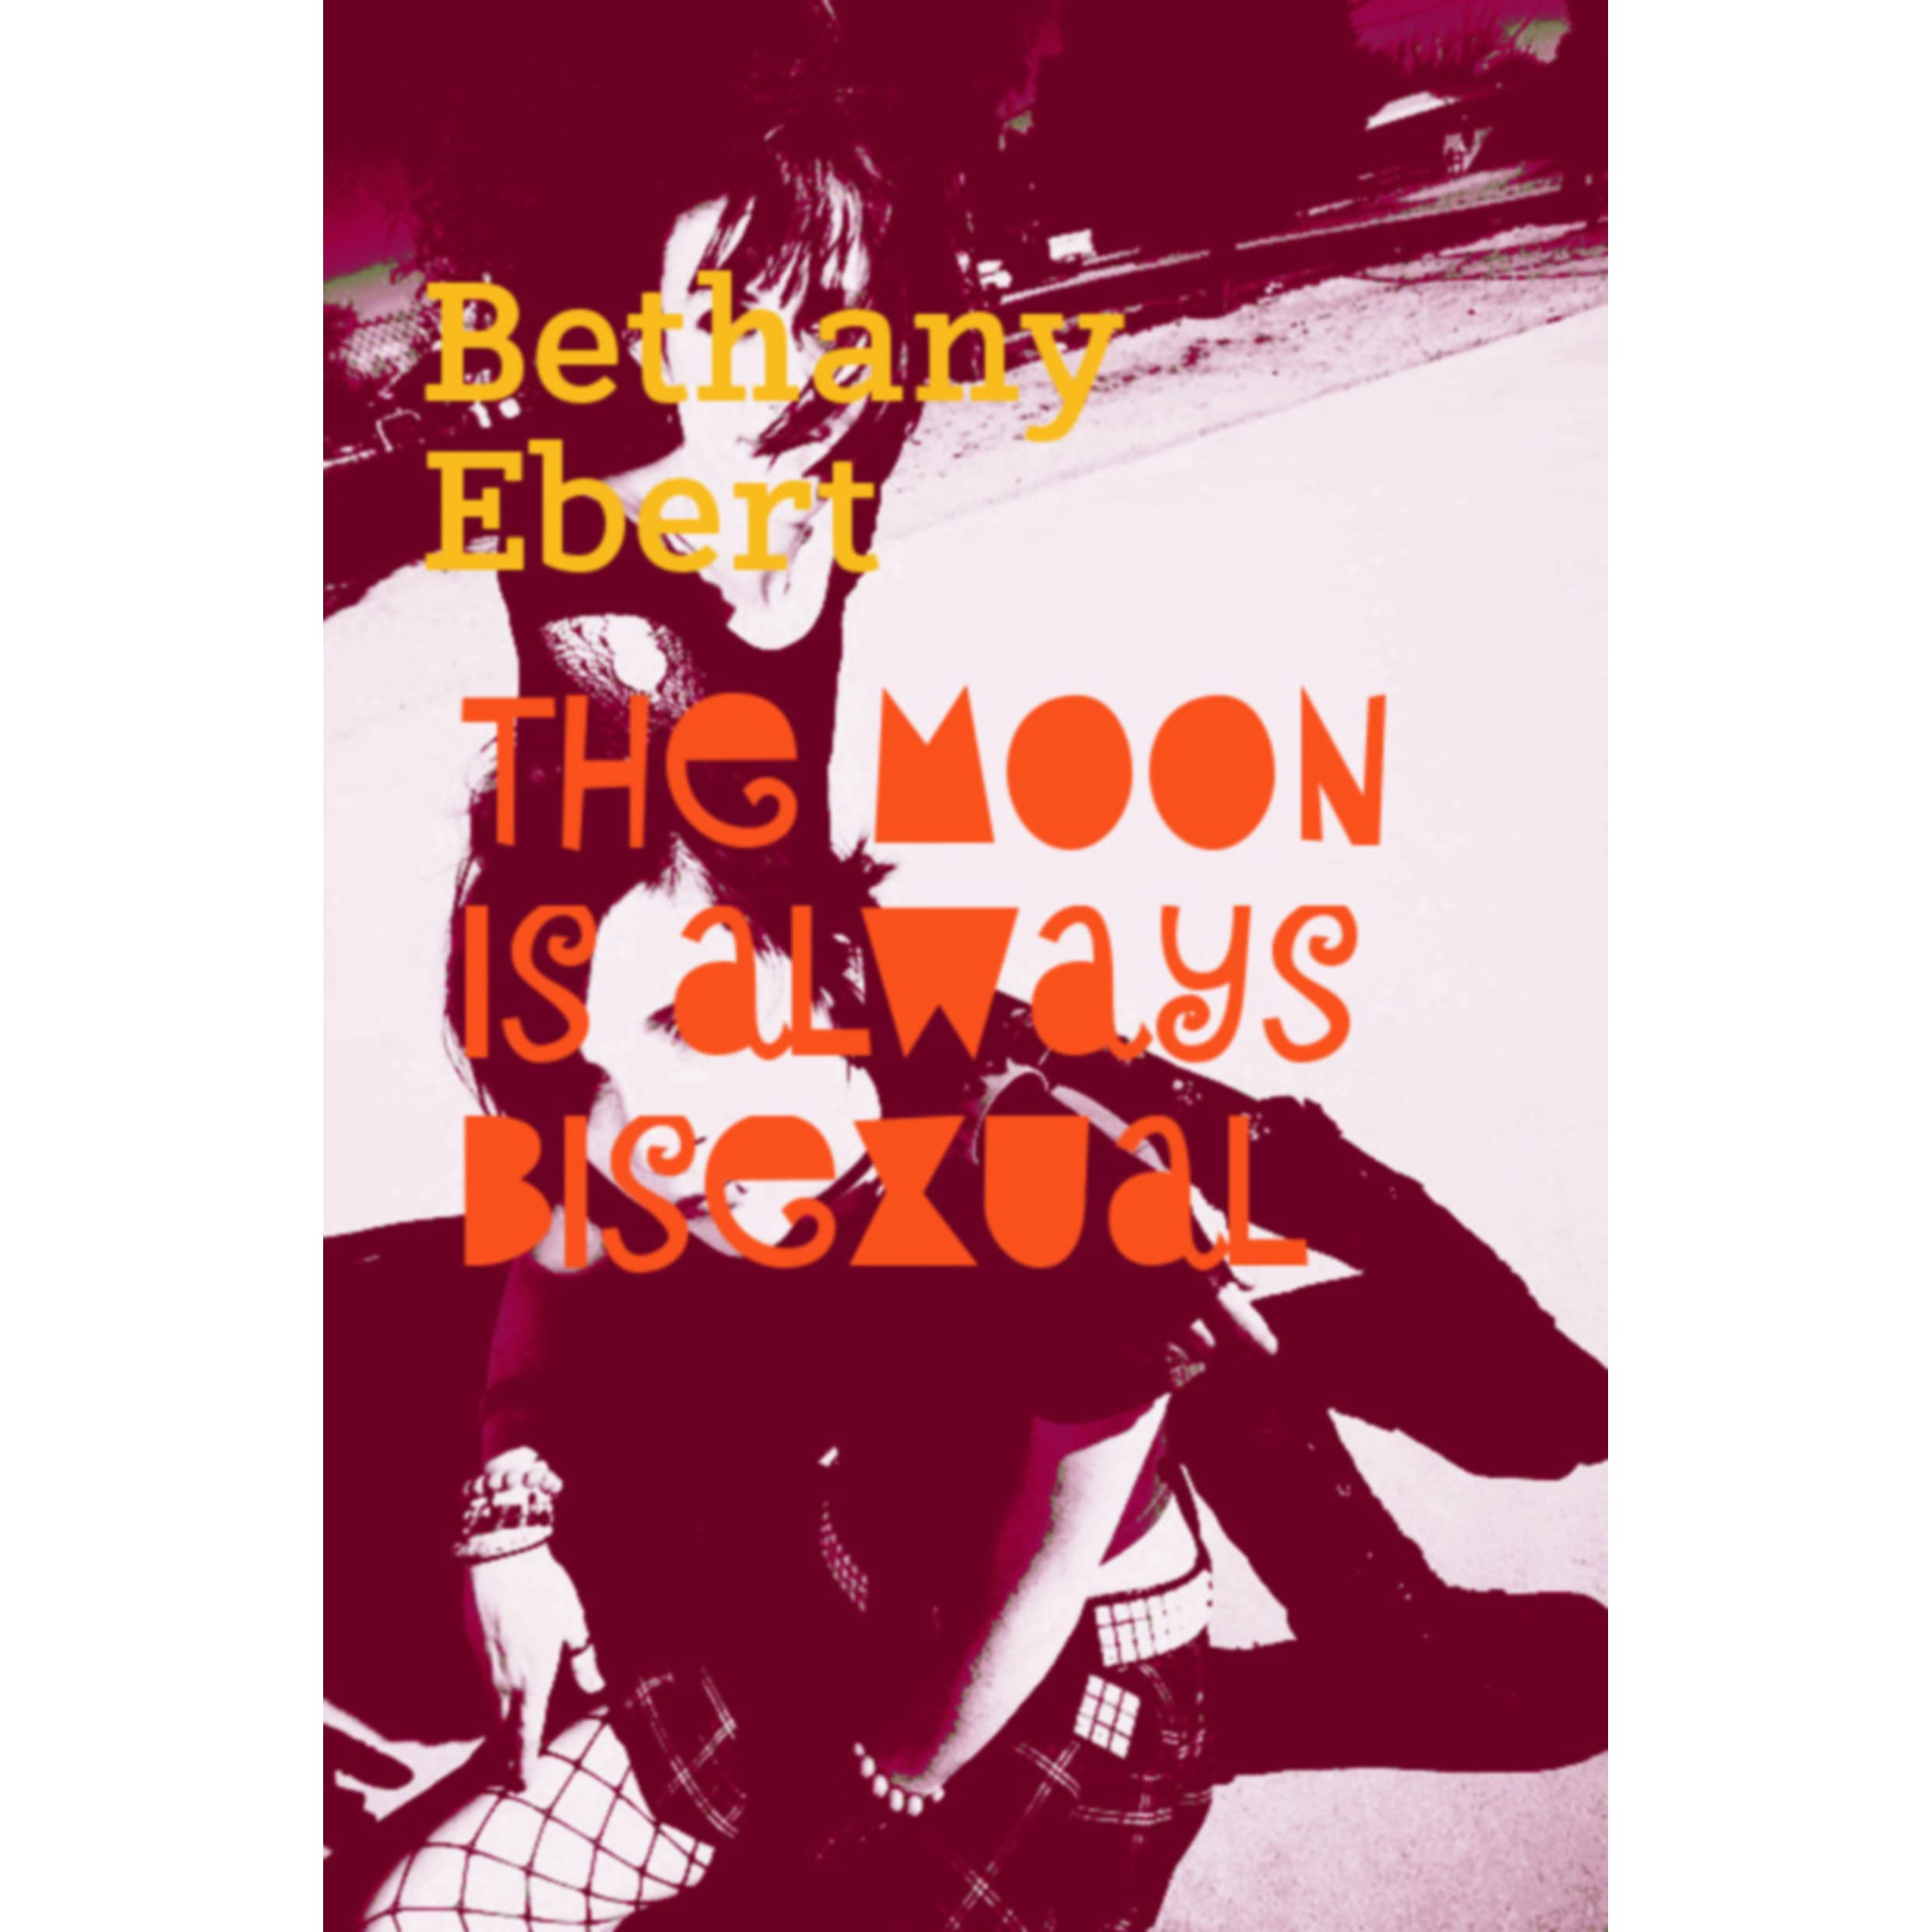 The moon is always bisexual by bethany ebert fandeluxe Ebook collections